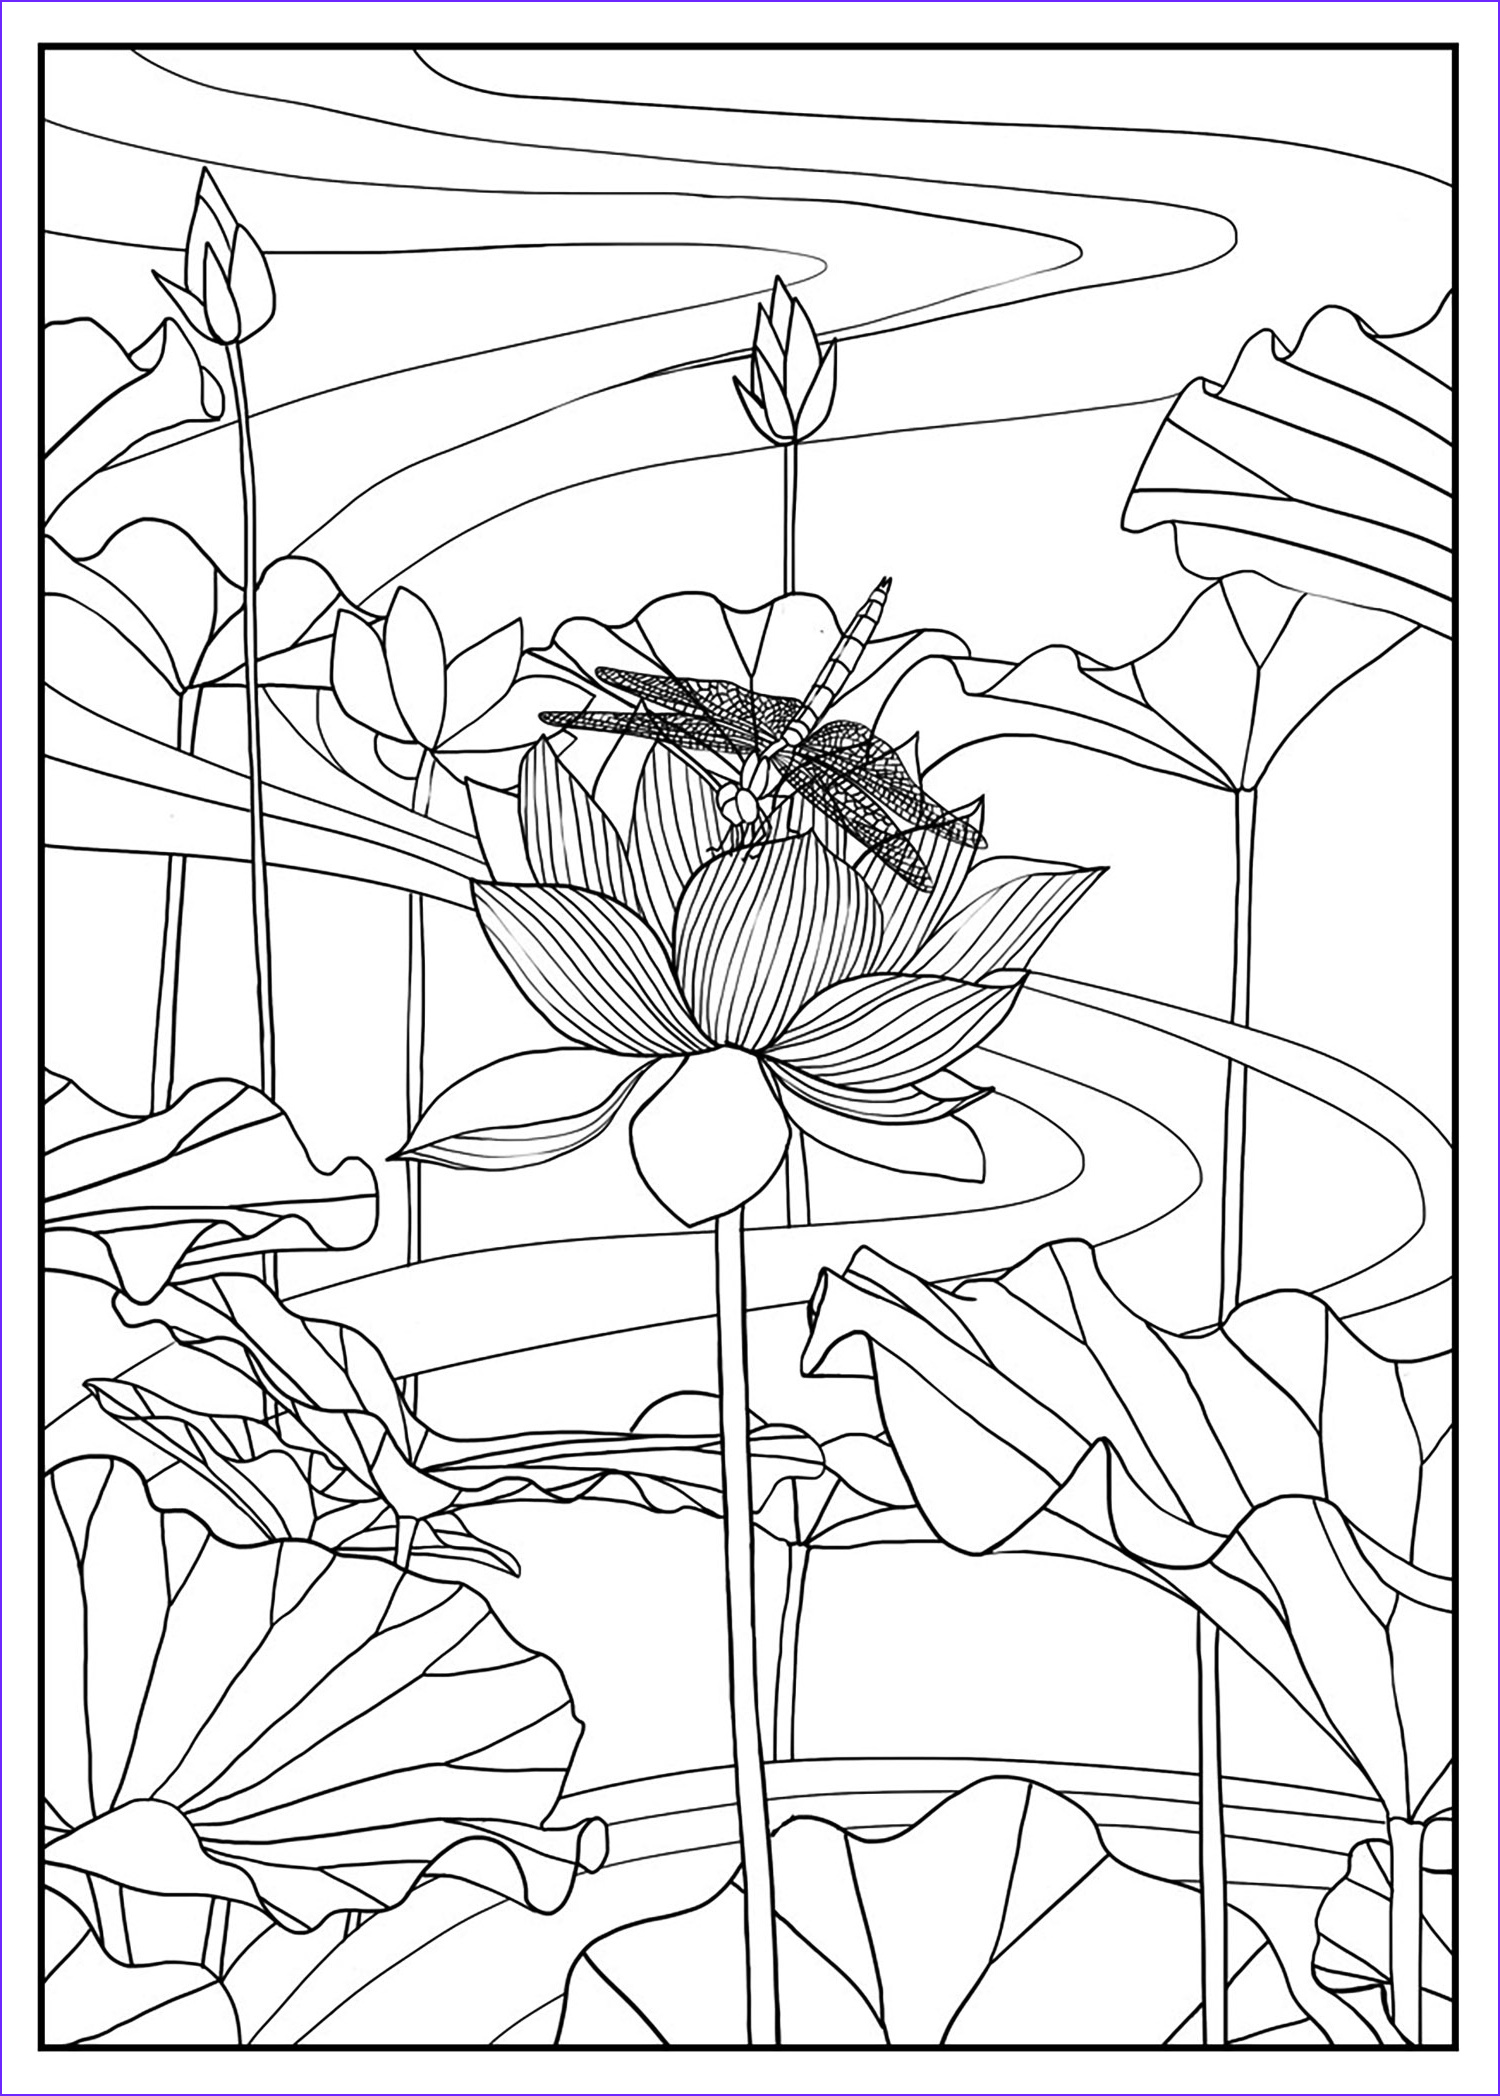 Color Art Coloring Book Best Of Gallery Lotus by Mizu Flowers Adult Coloring Pages Page 2